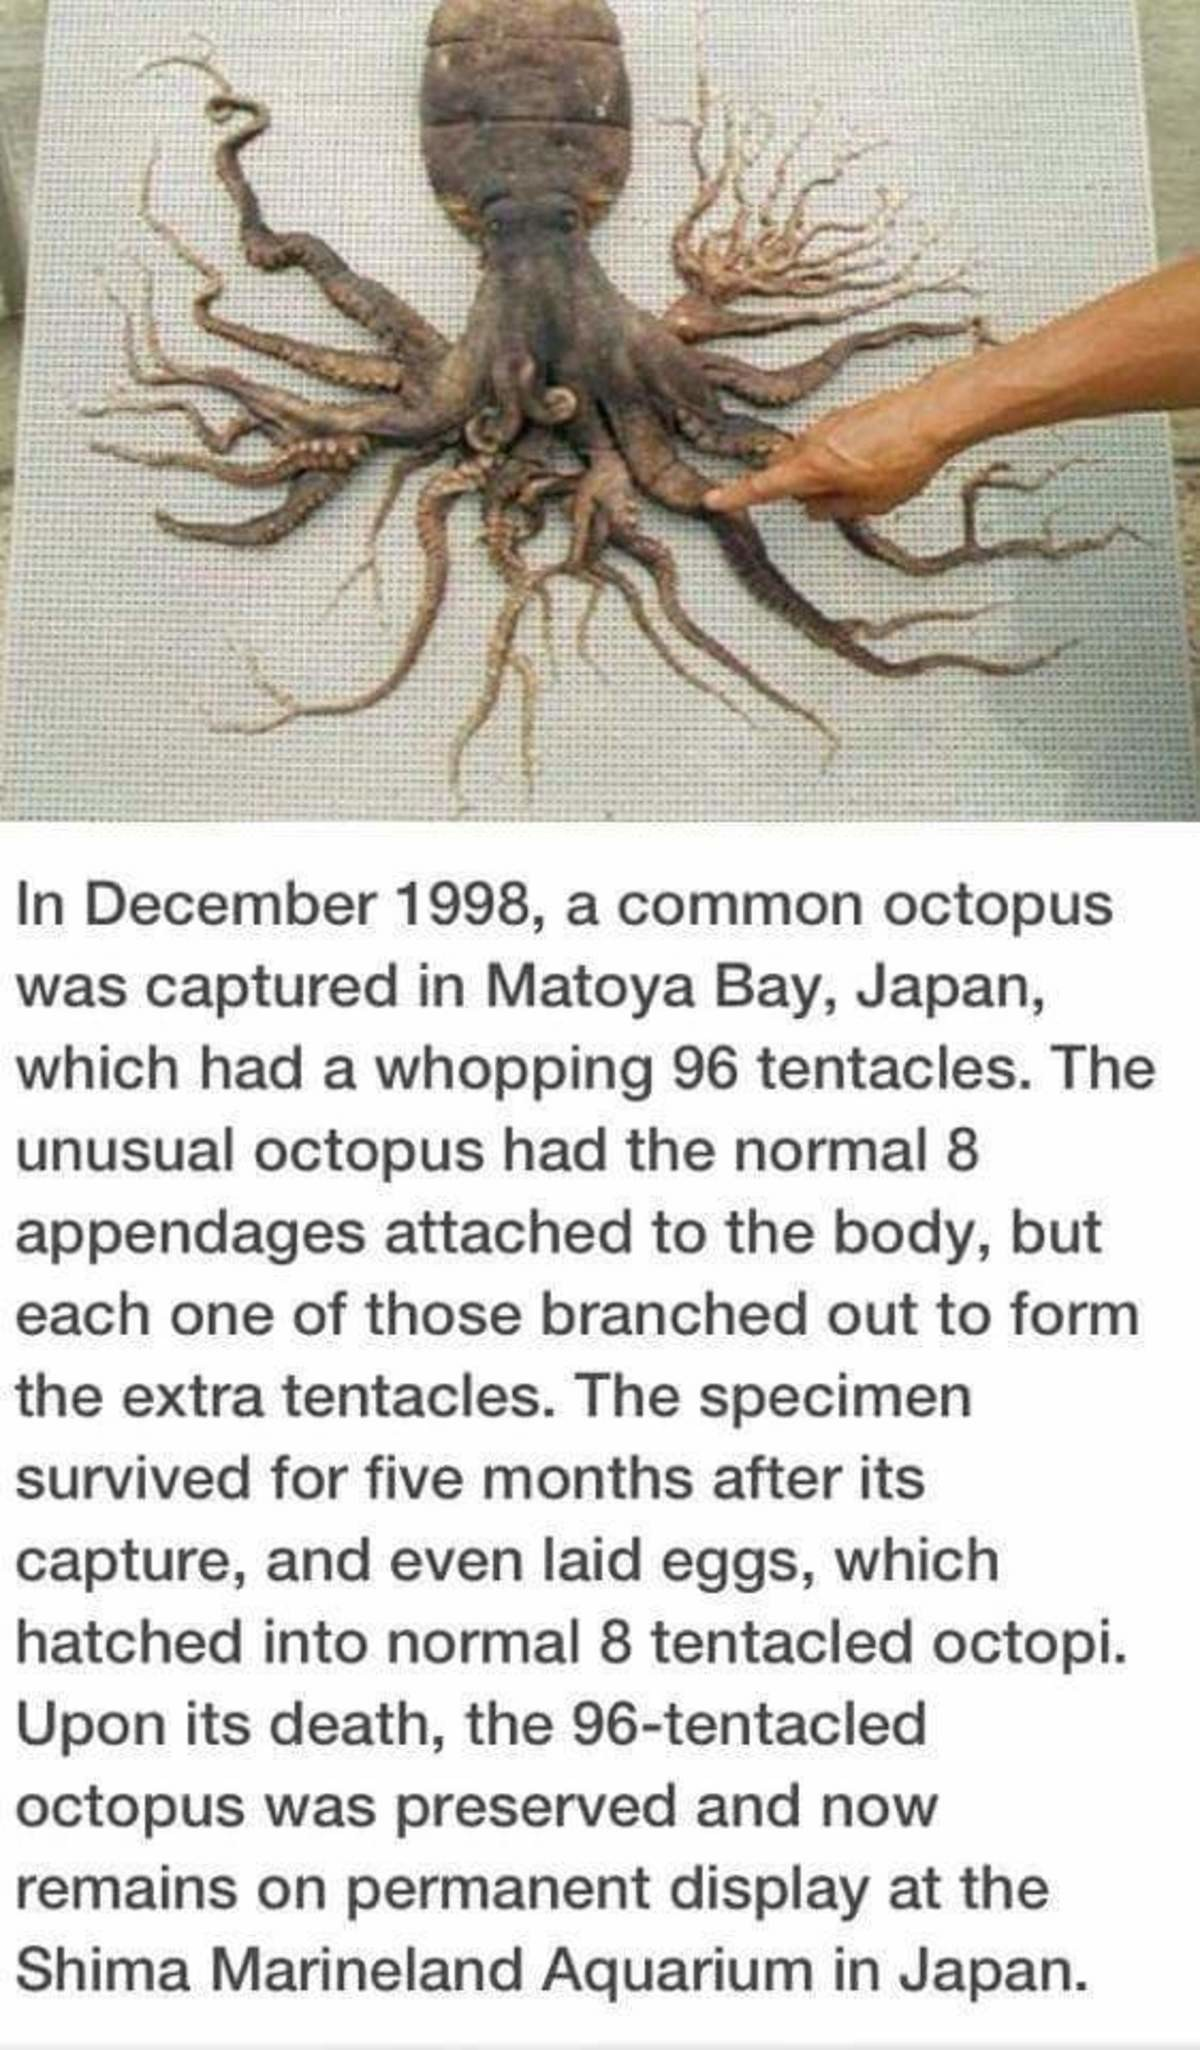 Octopus. . tyt In December 1998, a common octopus was captured in Latoya Bay, Japan, which had a whopping 96 tentacles. The unusual octopus had the normal 8 app